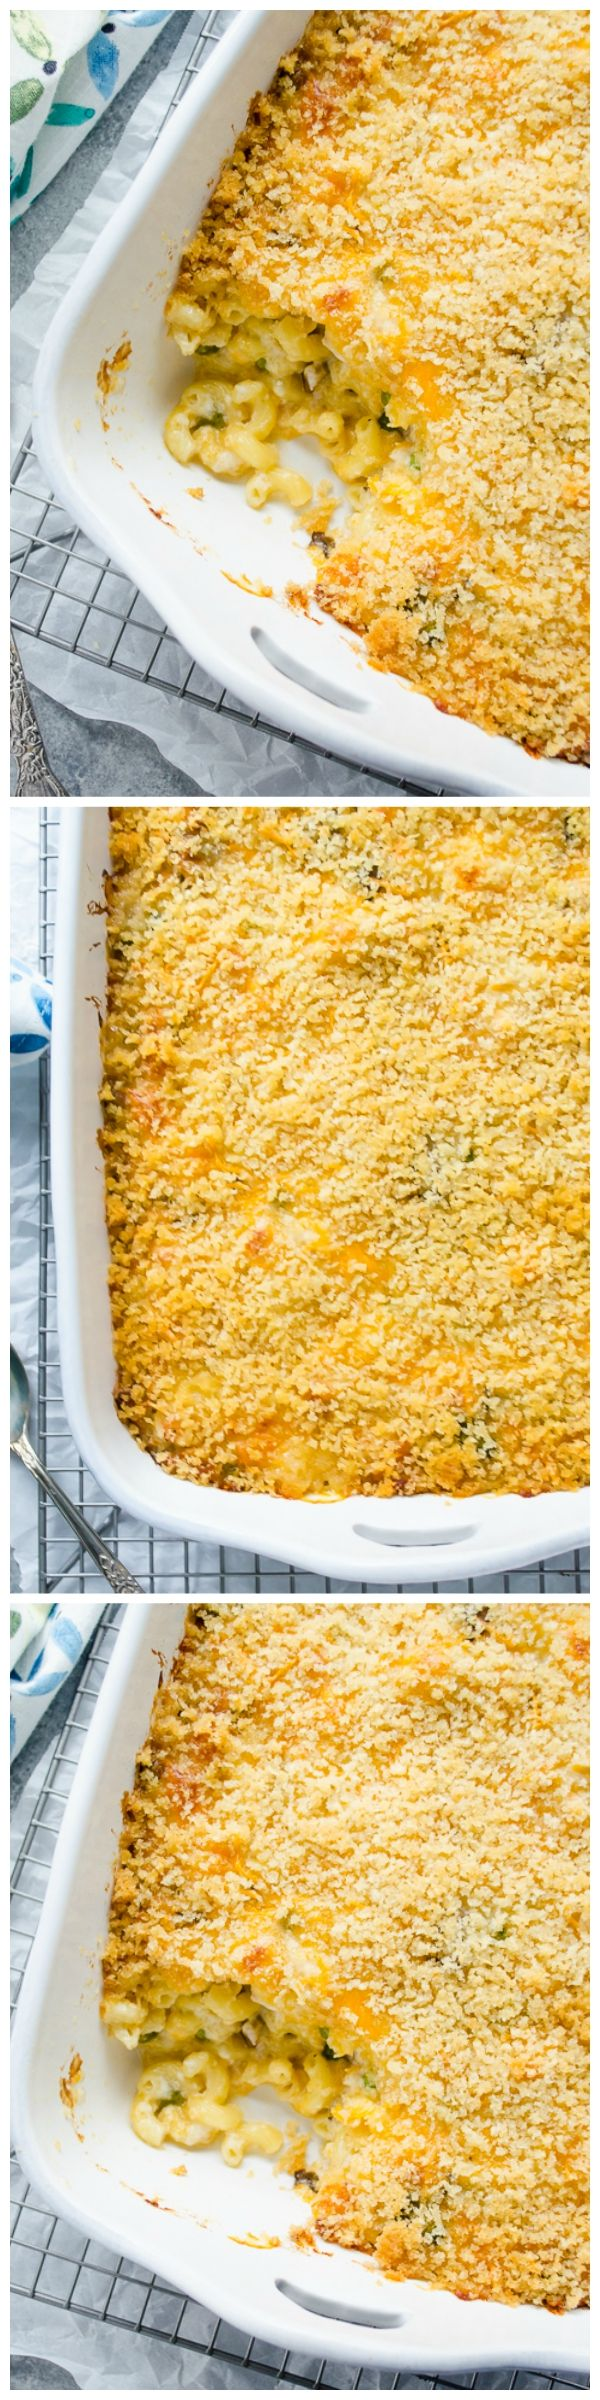 Overnight Creamy Chicken Mac and Cheese Casserole - This yummy casserole is made completely in advance with no boiling the macaroni required! It's made completely from scratch and is sure to be a family favorite! 